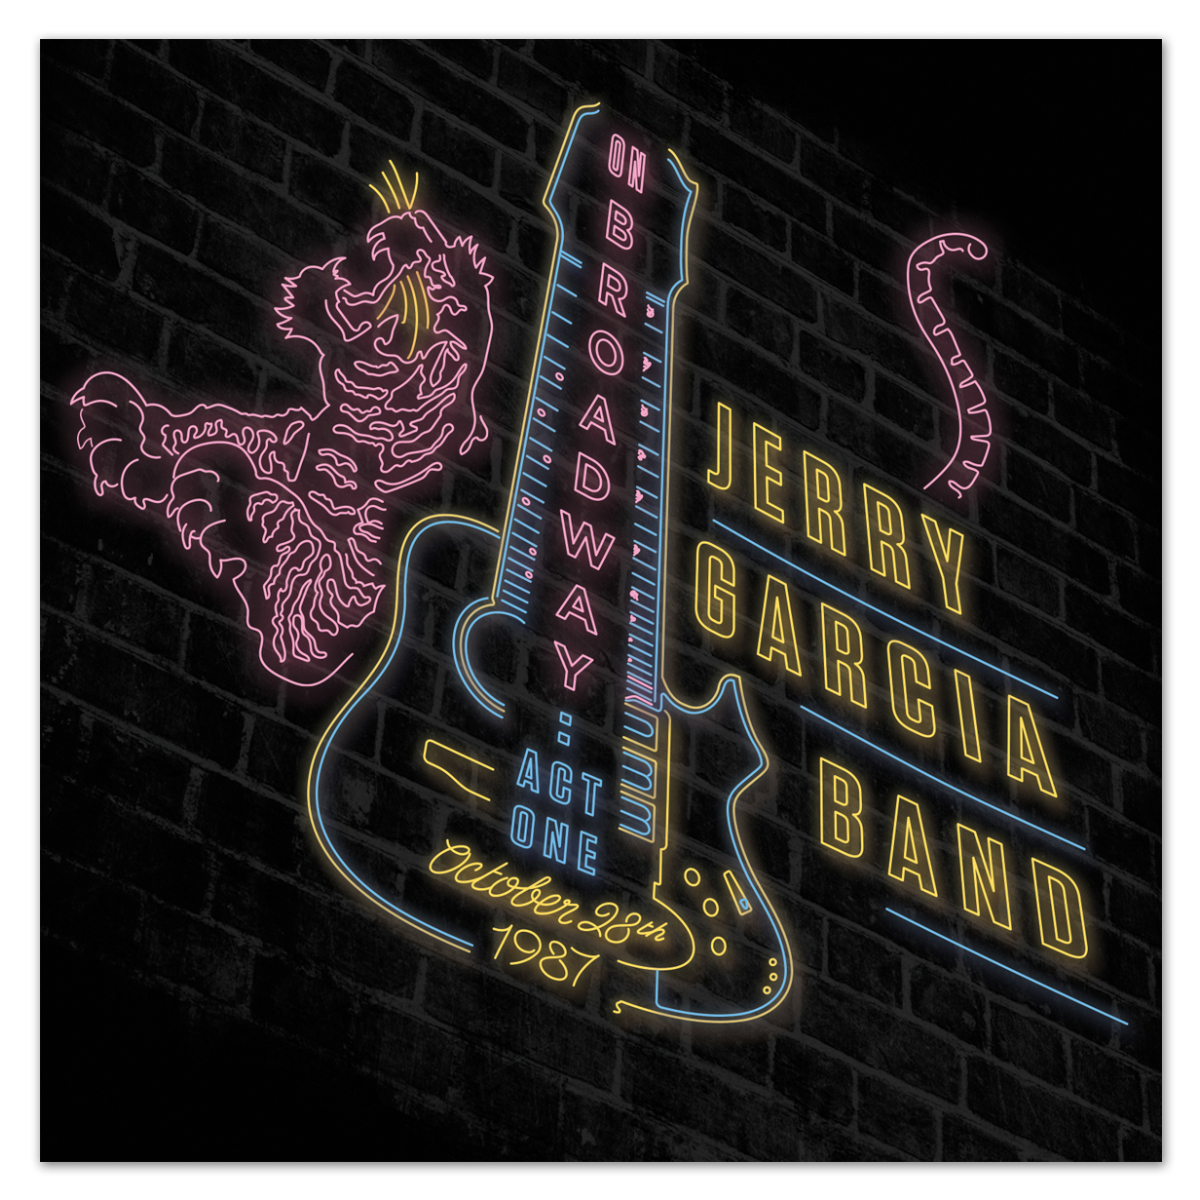 Jerry Garcia Band On Broadway Act One 10 28 87 3 Cd Set